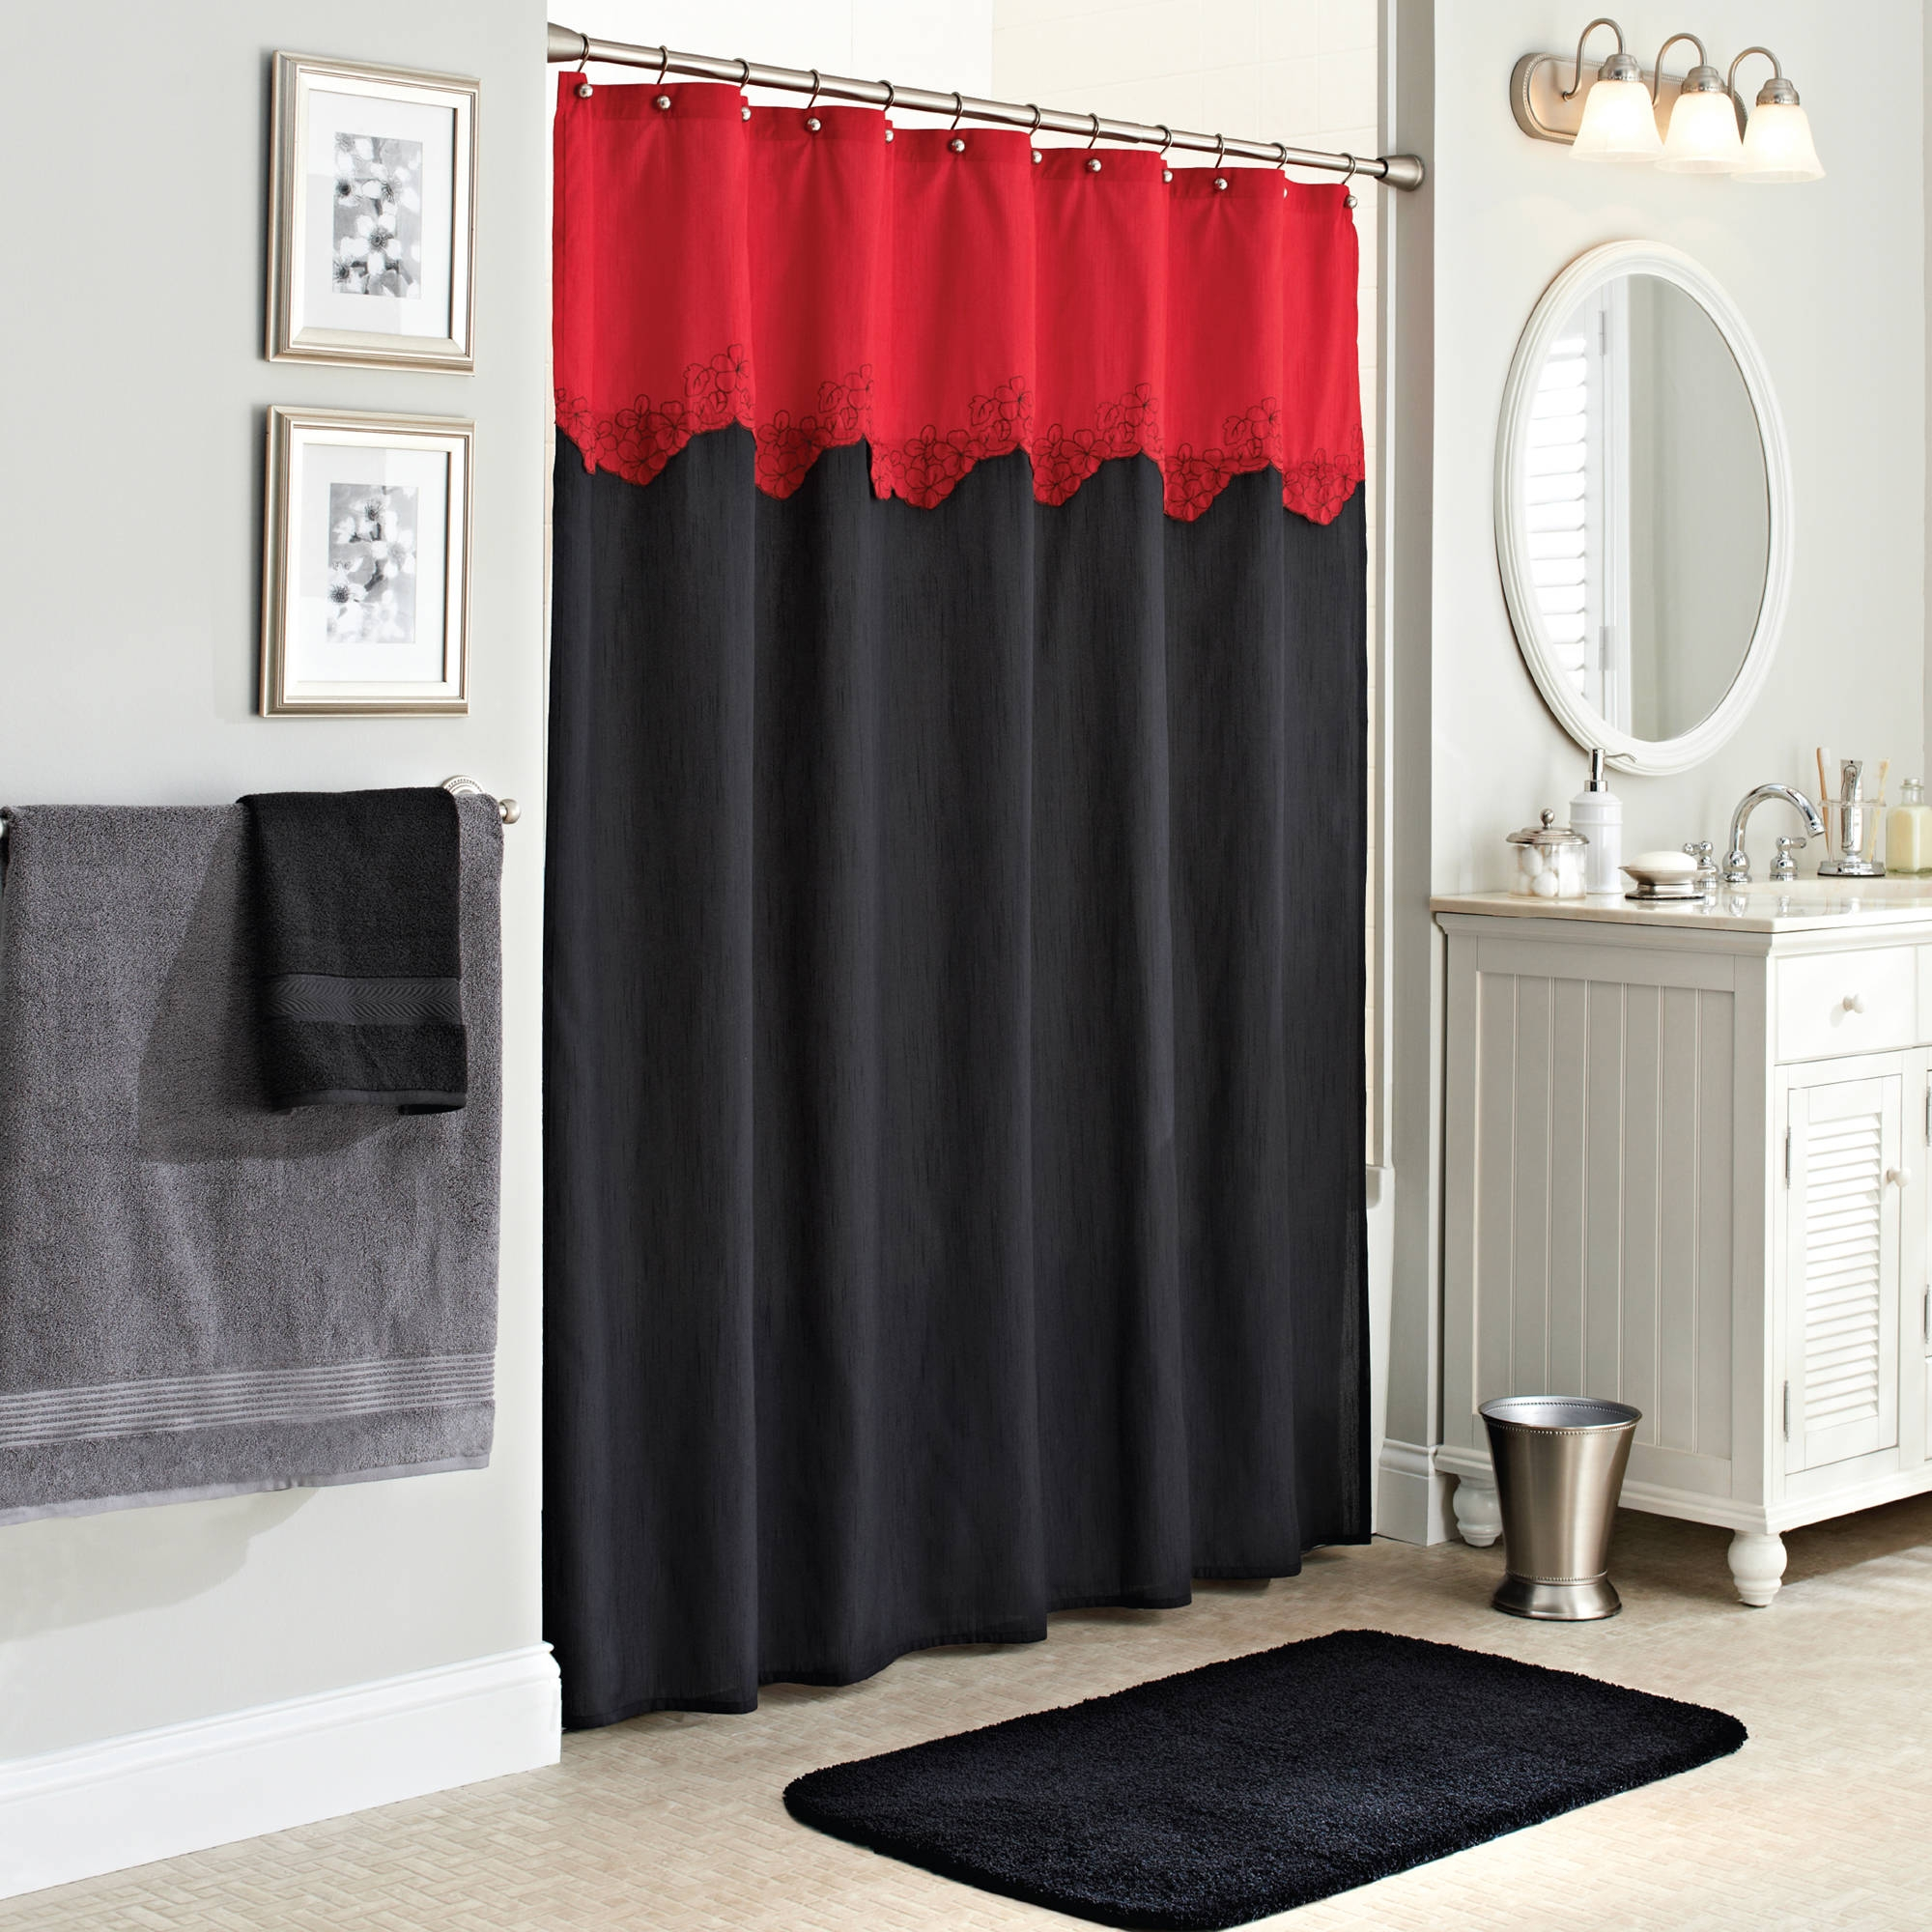 Exceptional Black Uga Shower Curtain Shower Curtain Inside Sizing 2000 X 2000